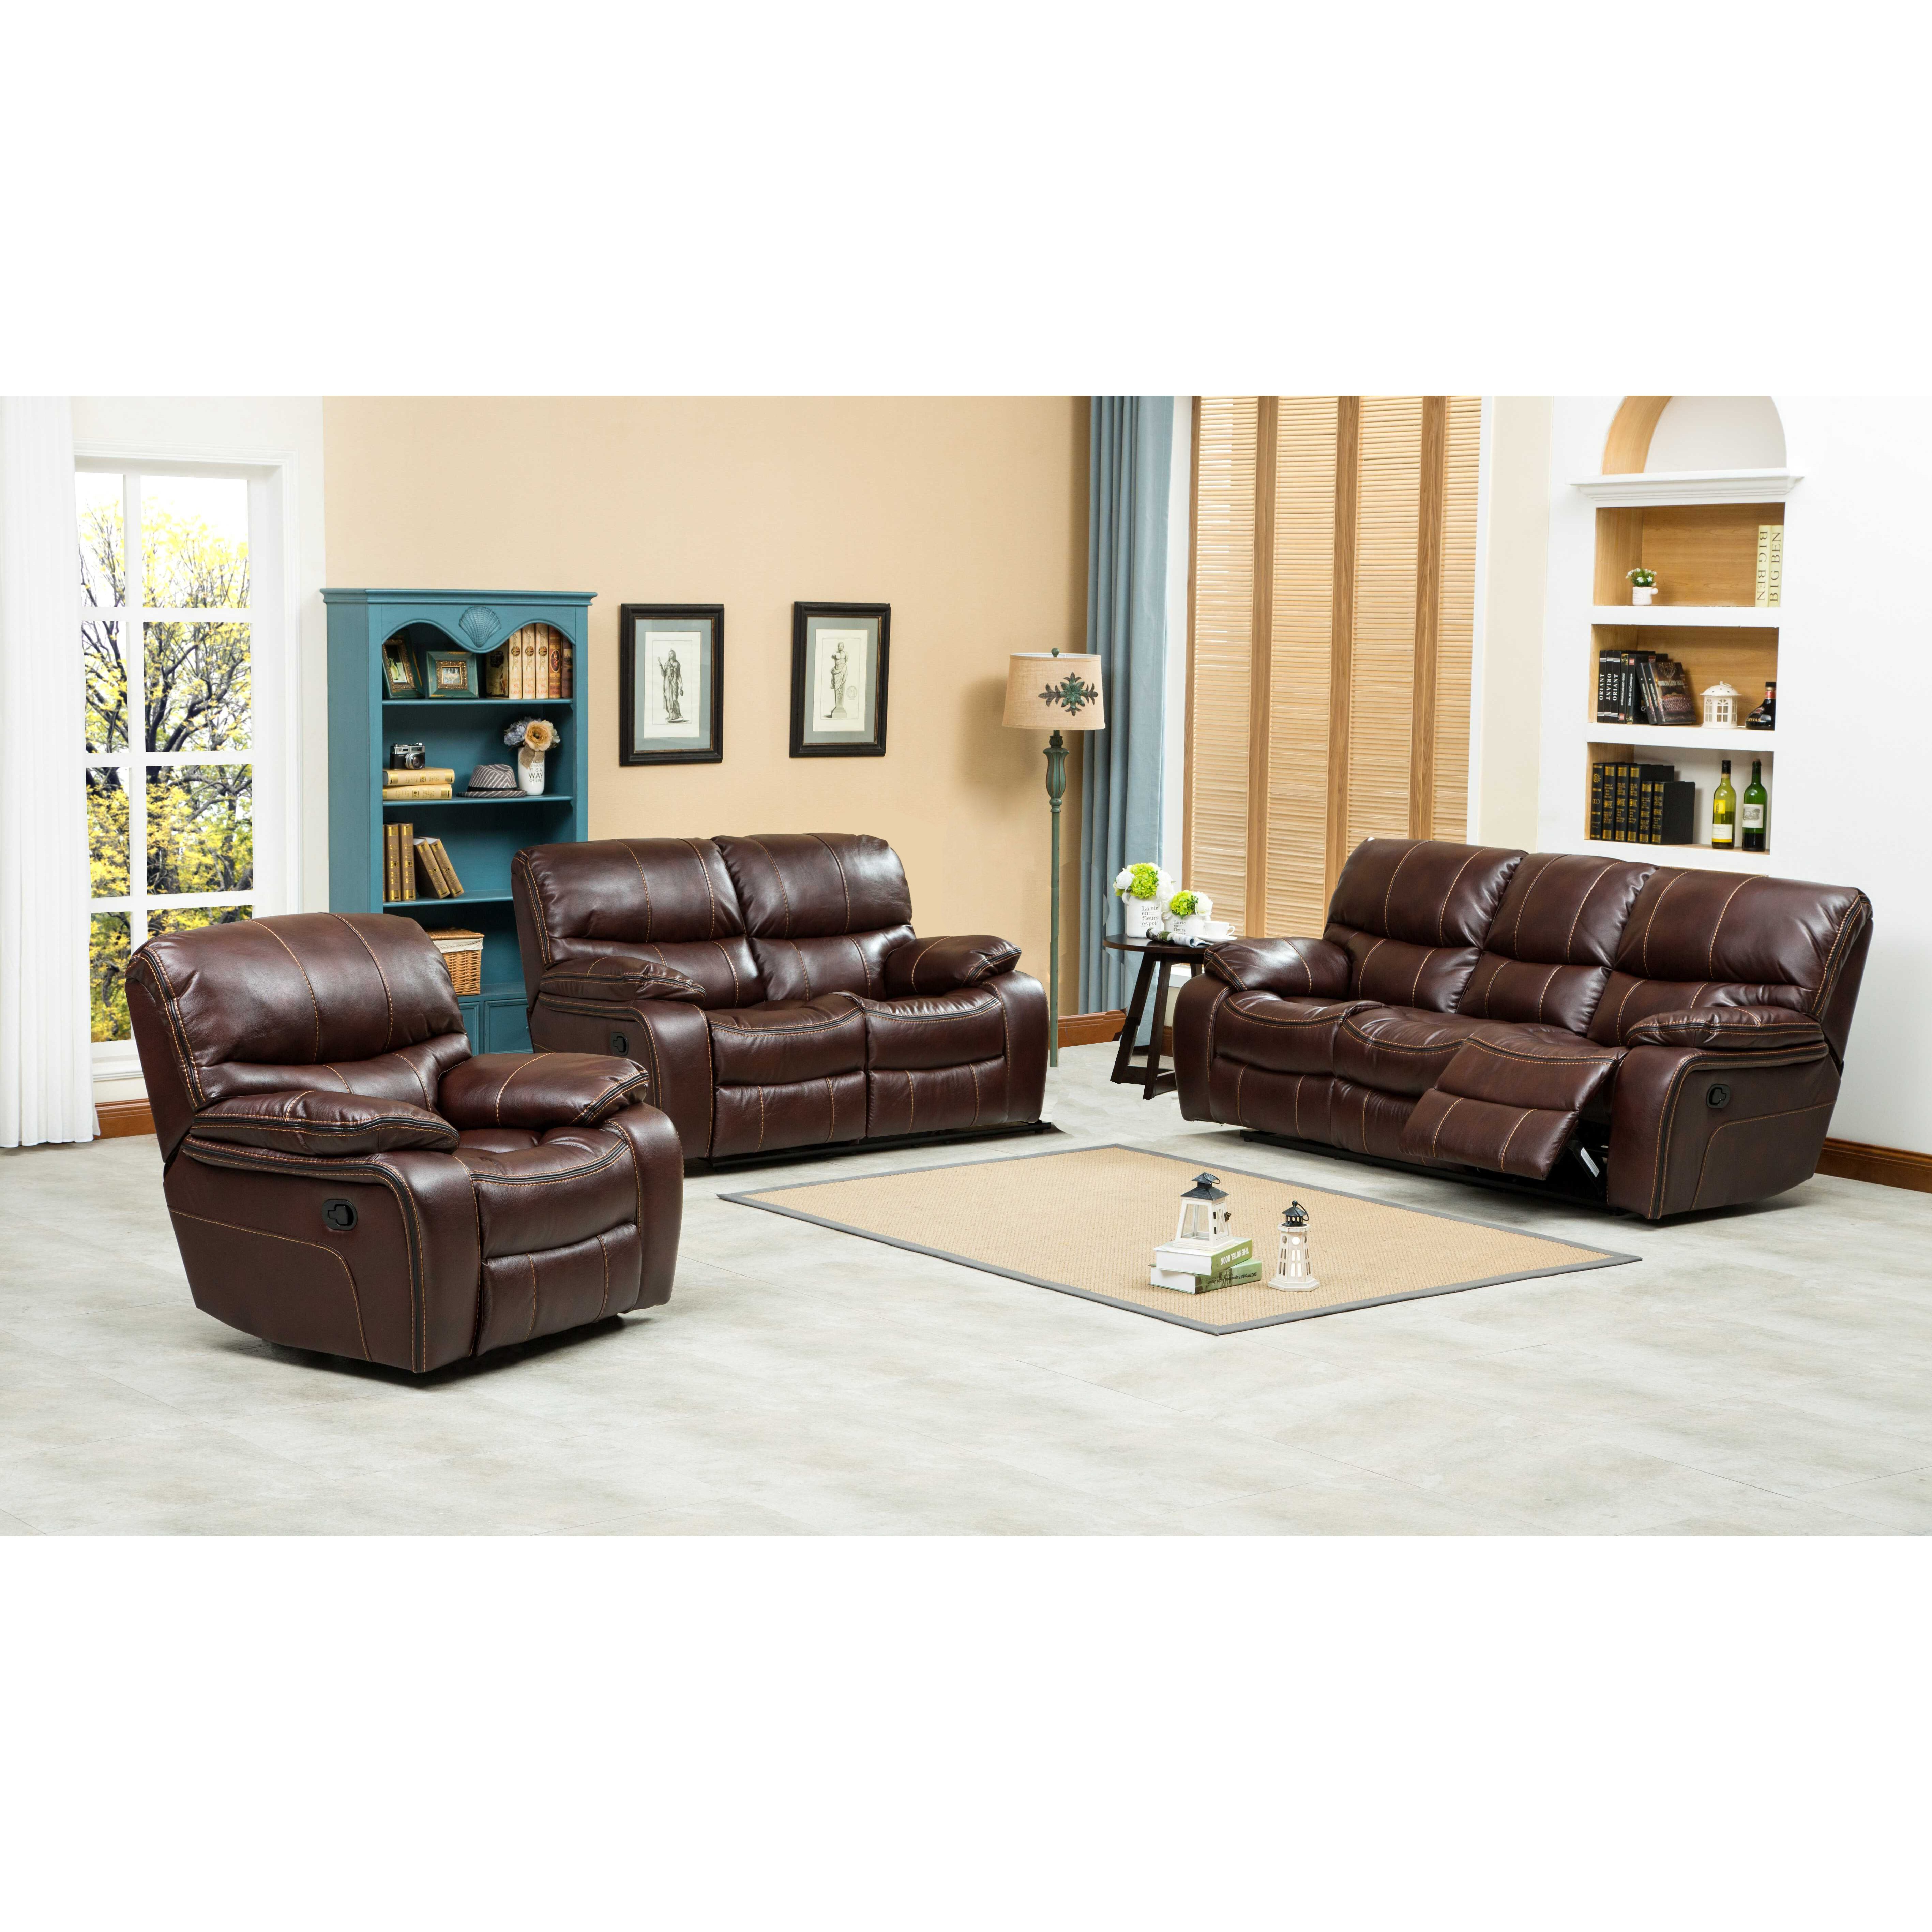 Roundhill furniture ewa 3 piece reclining leather living for Living room furniture 0 finance